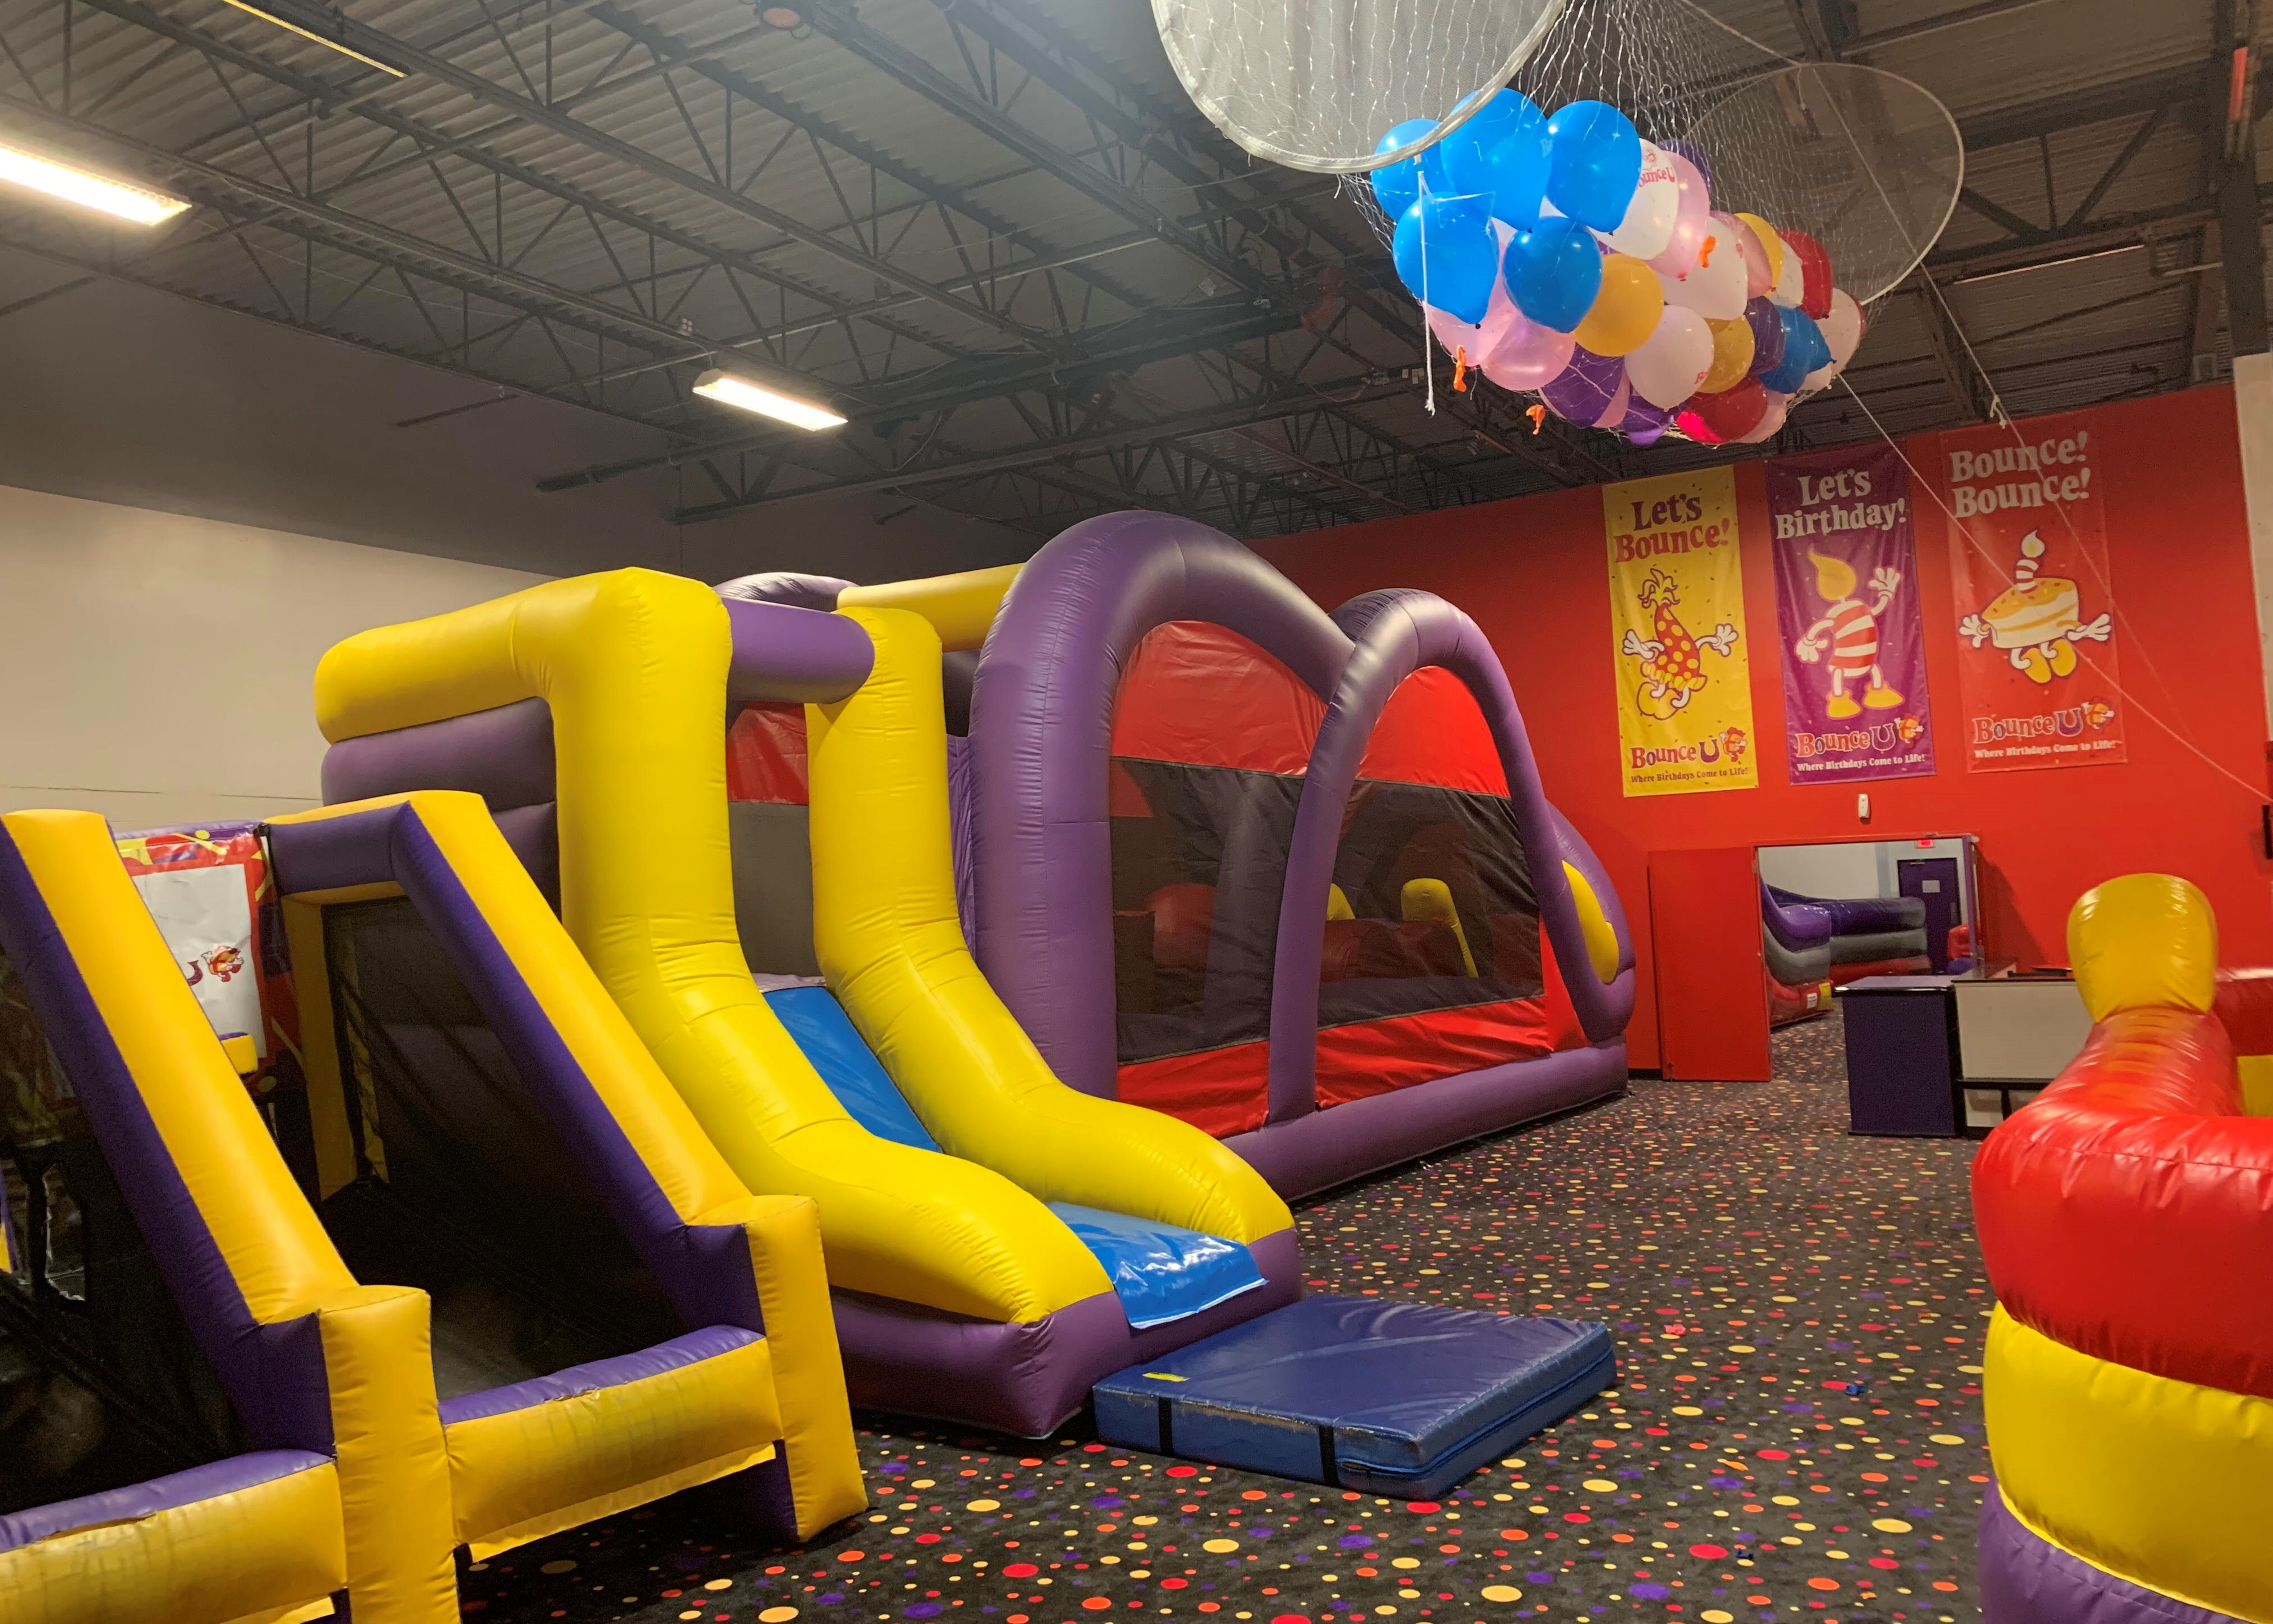 BounceU birthday party arena space with two large inflatable rides and a balloon drop filled with colorful balloons.